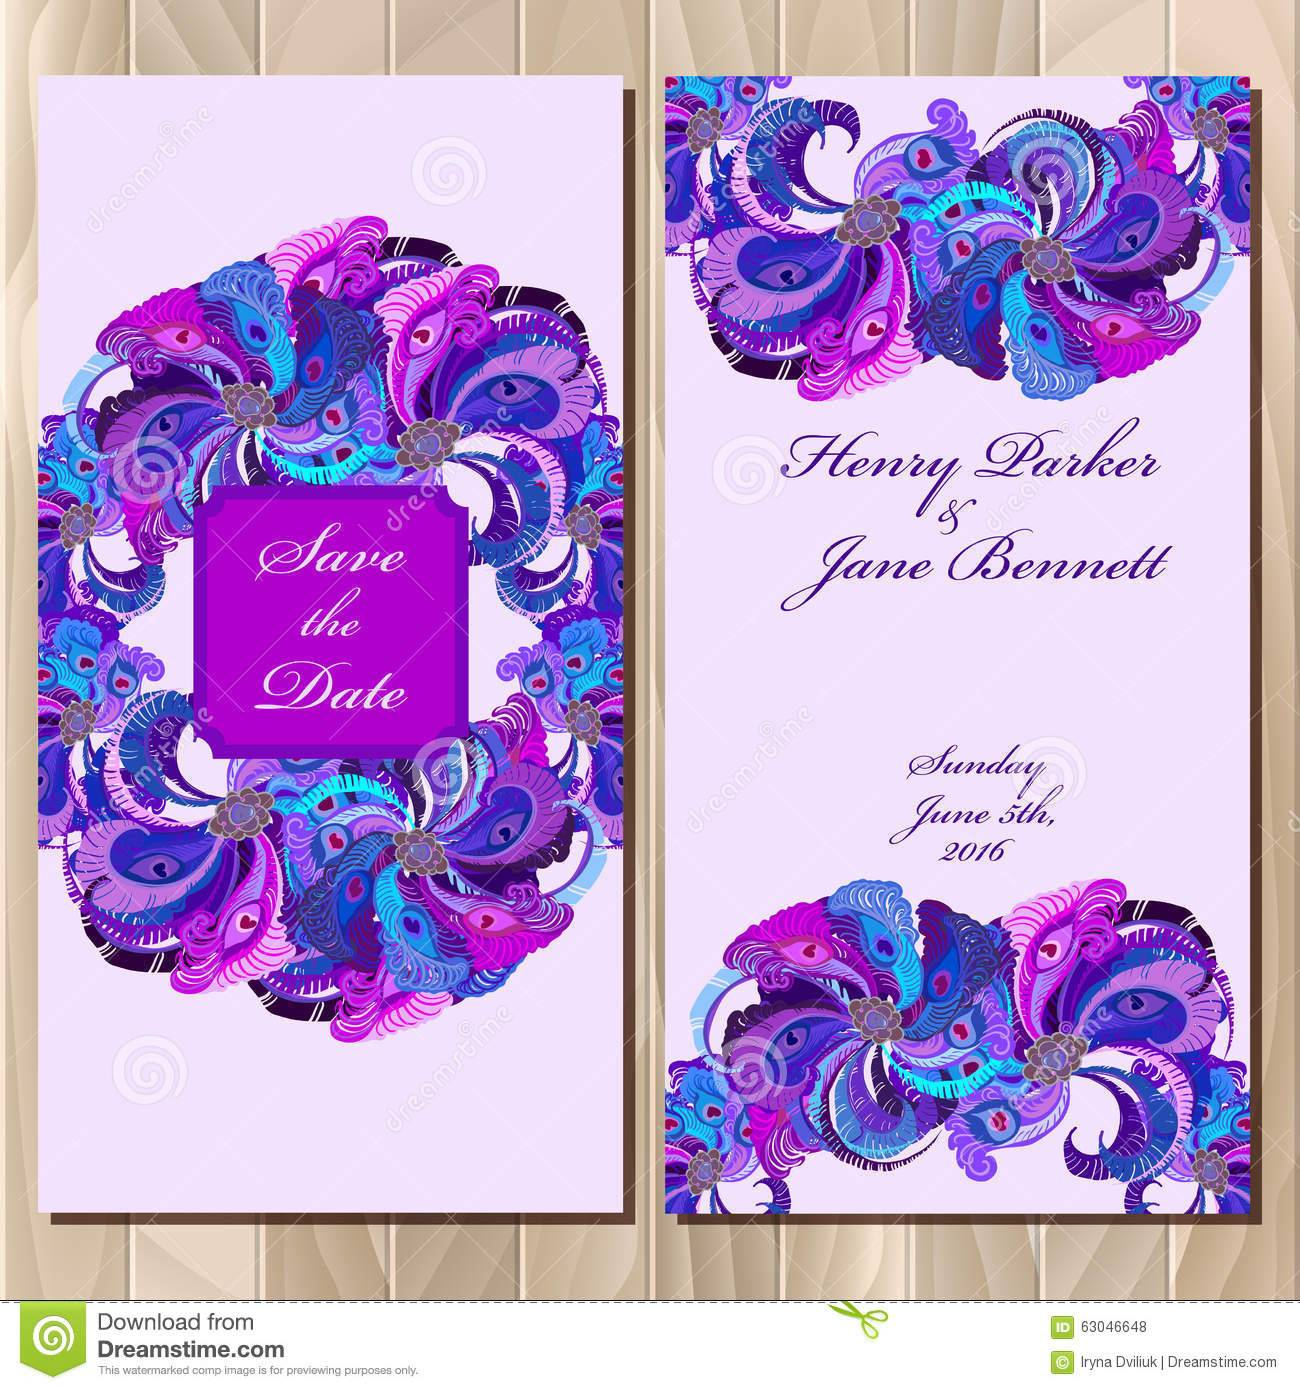 Peacock Birthday Invitation Template